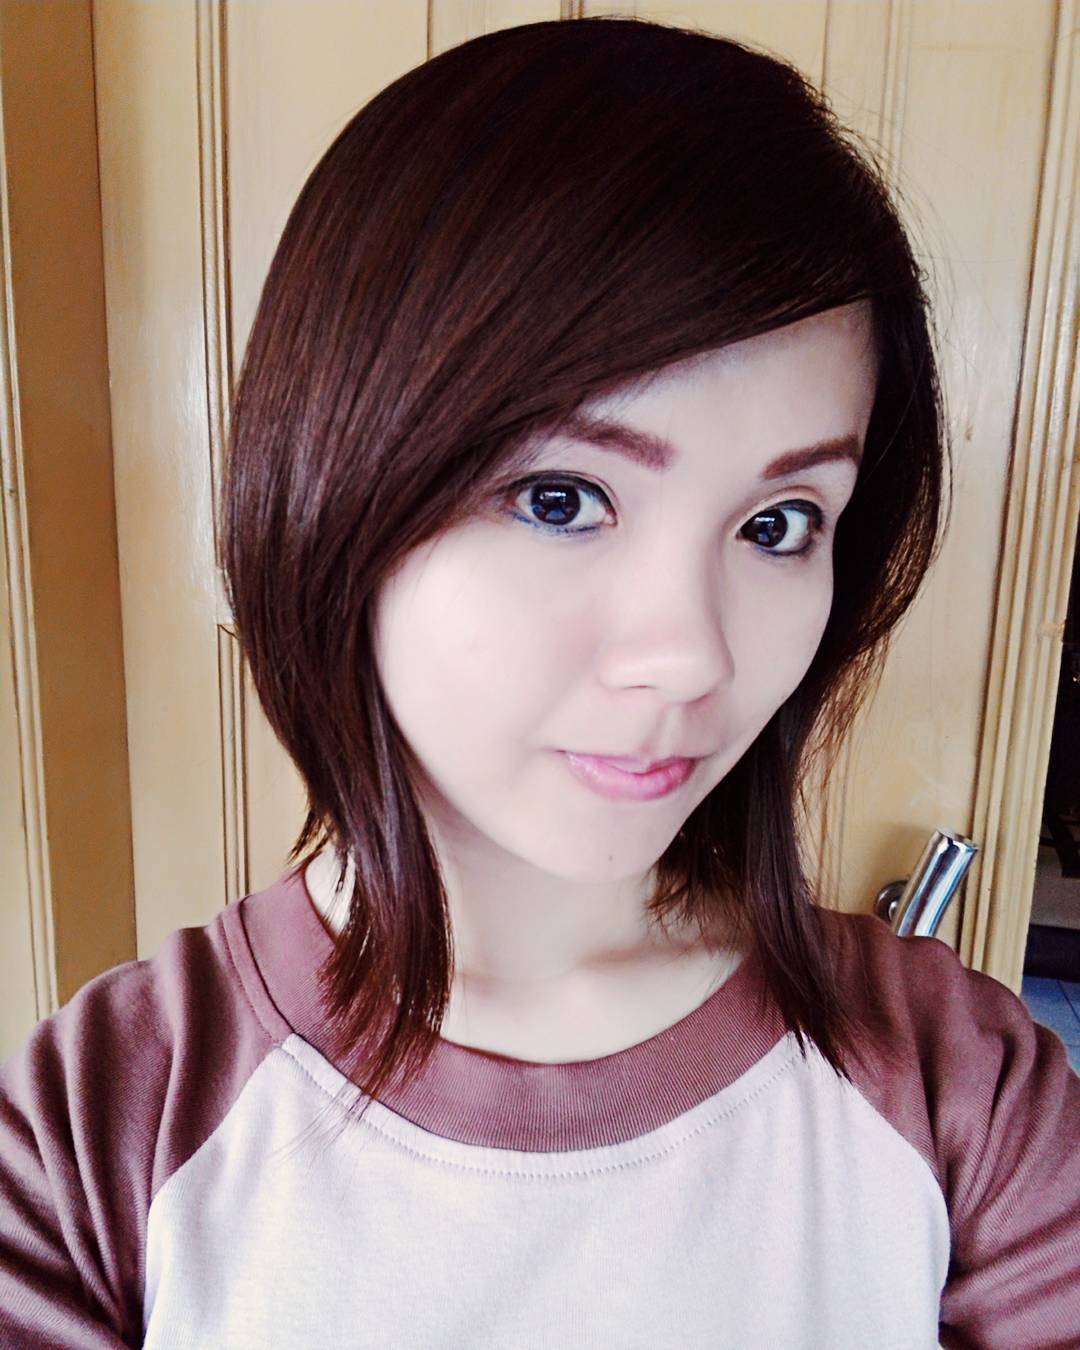 Lovely Bob Haircut Looks So Pretty